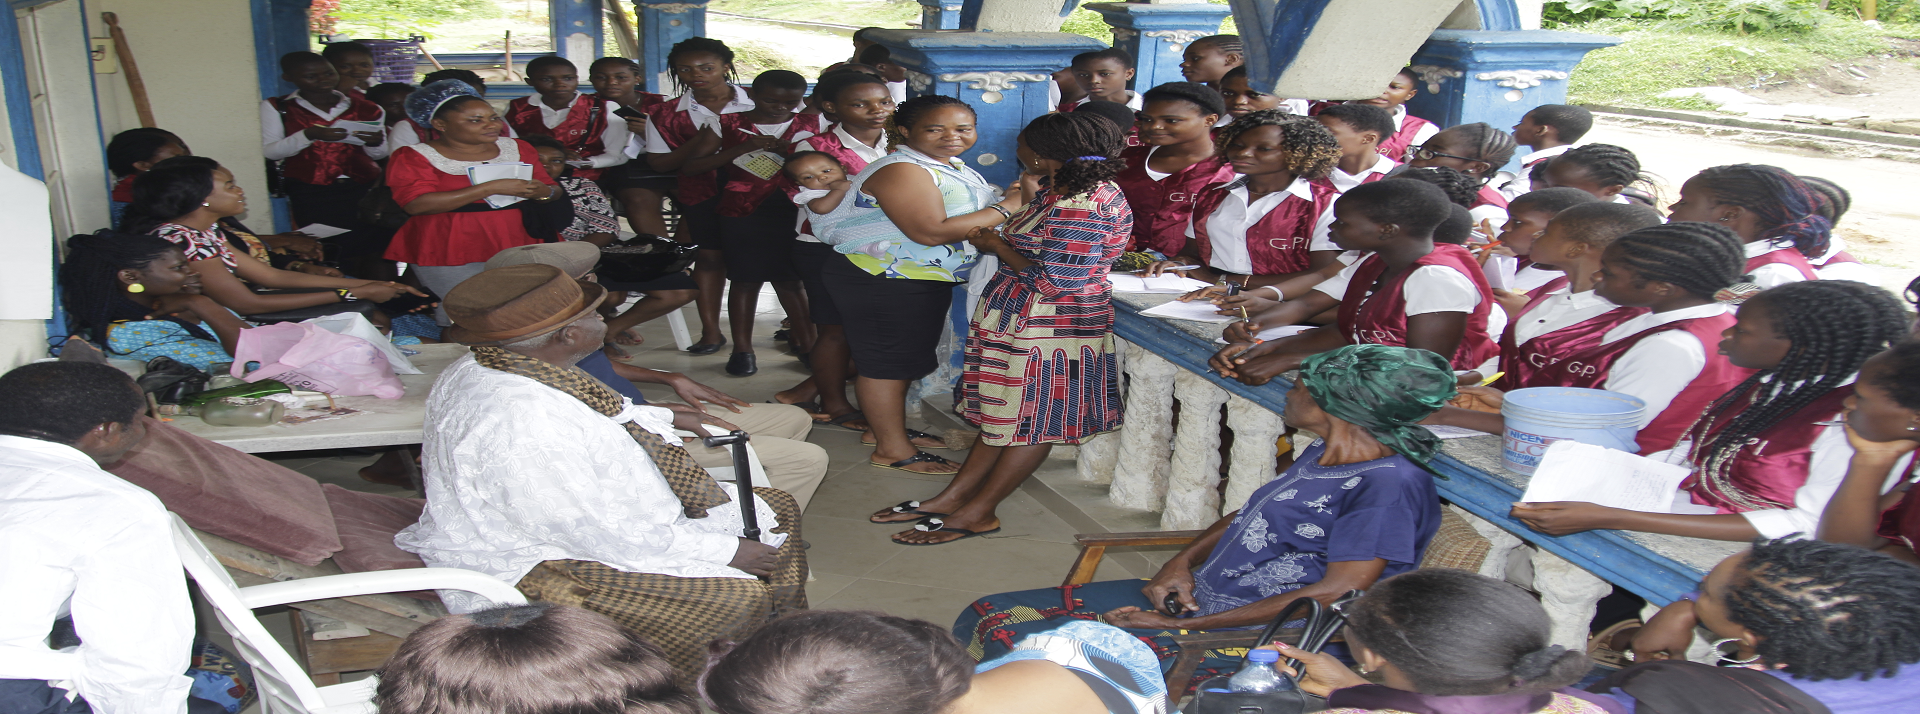 Adolescent sexuality and reproductive health